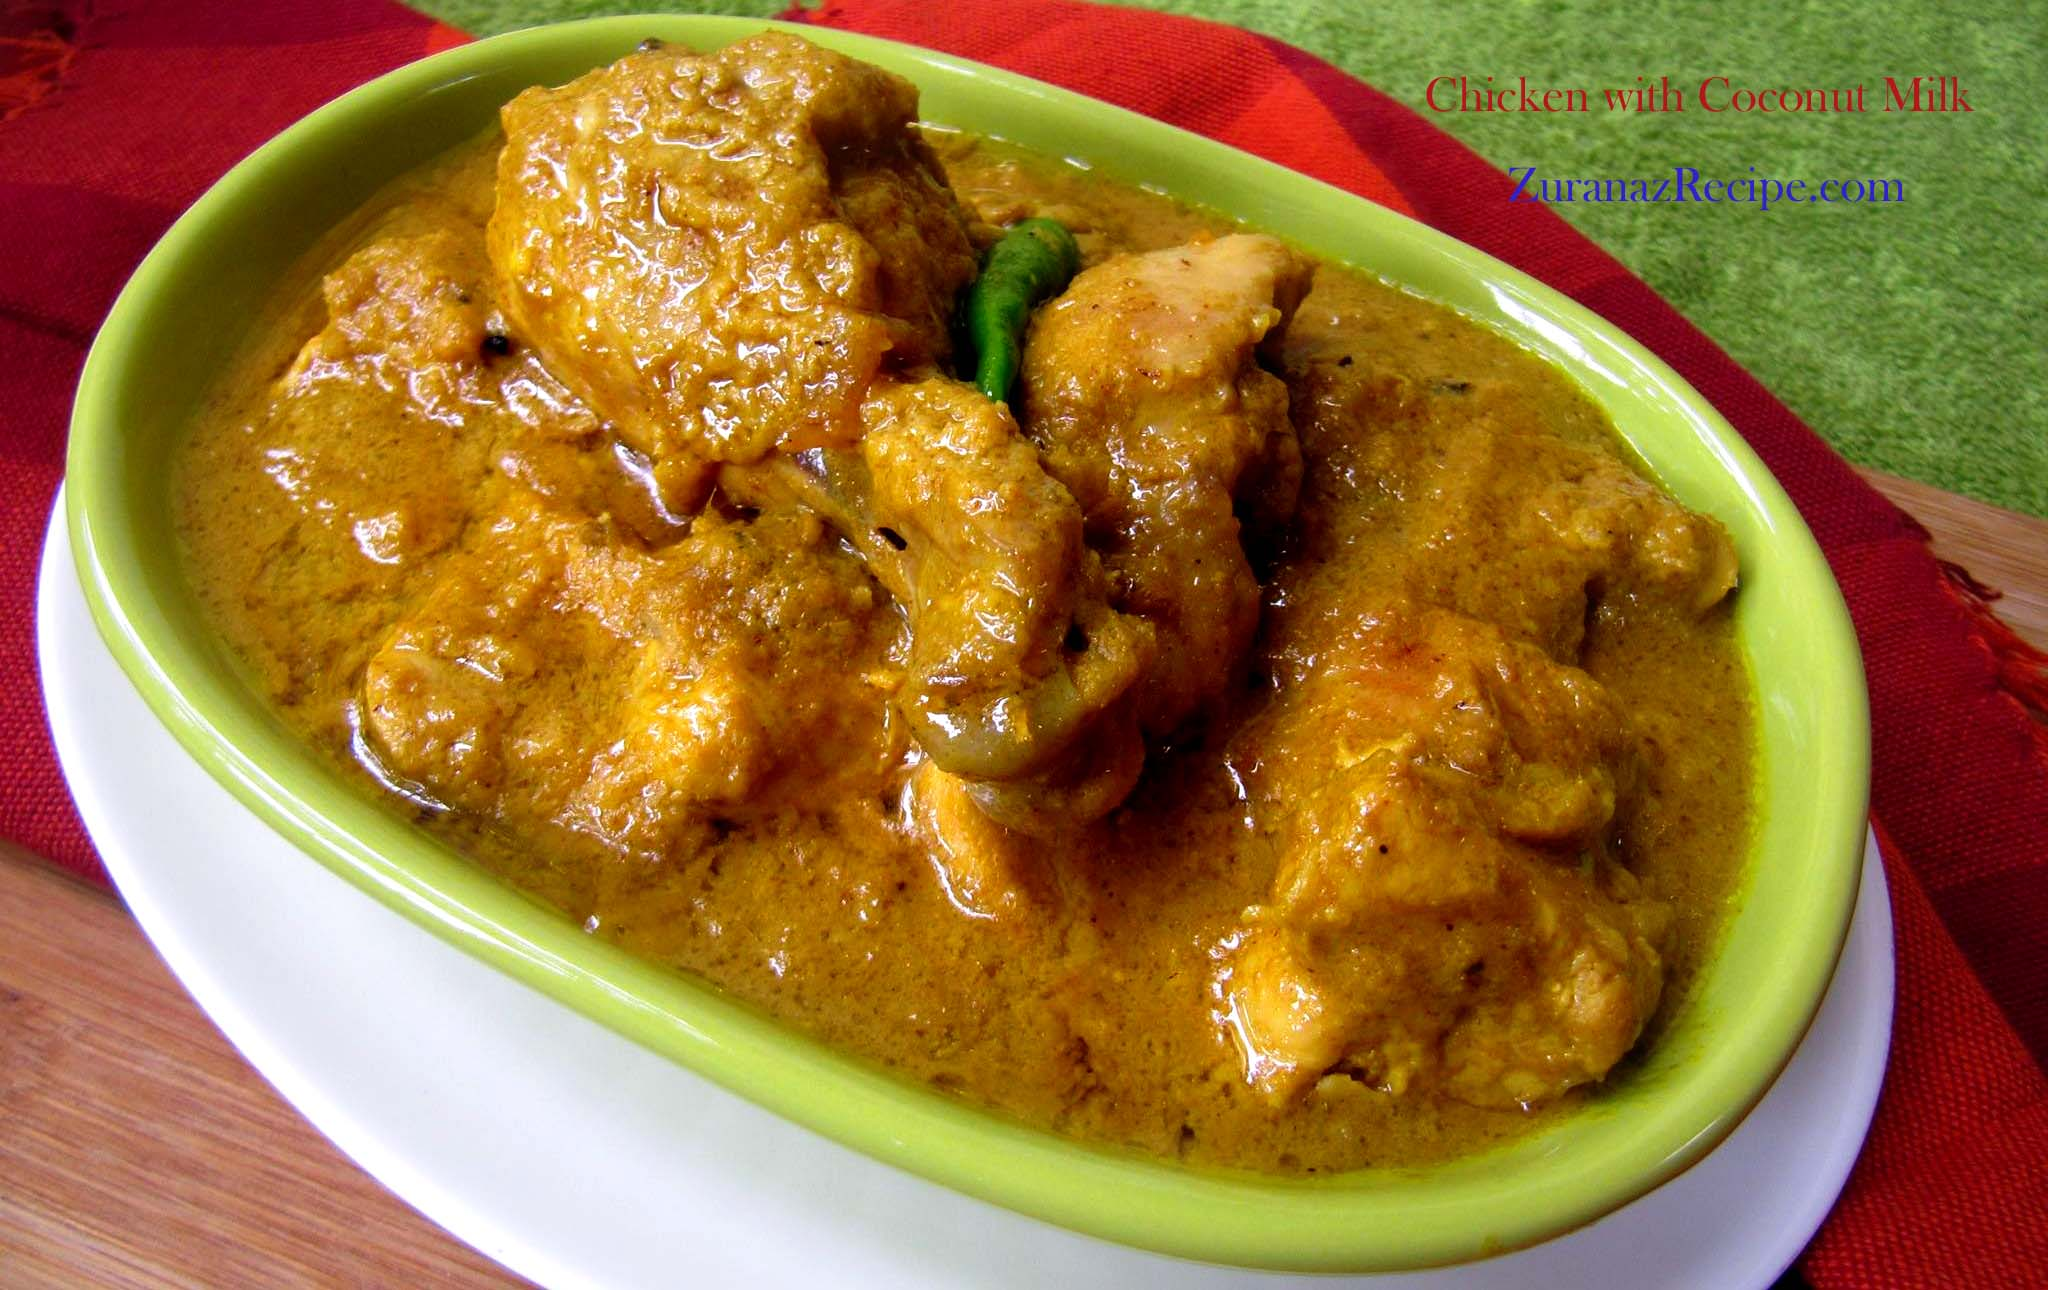 Chicken curry with coconut milk – Narikel dudhe murgi